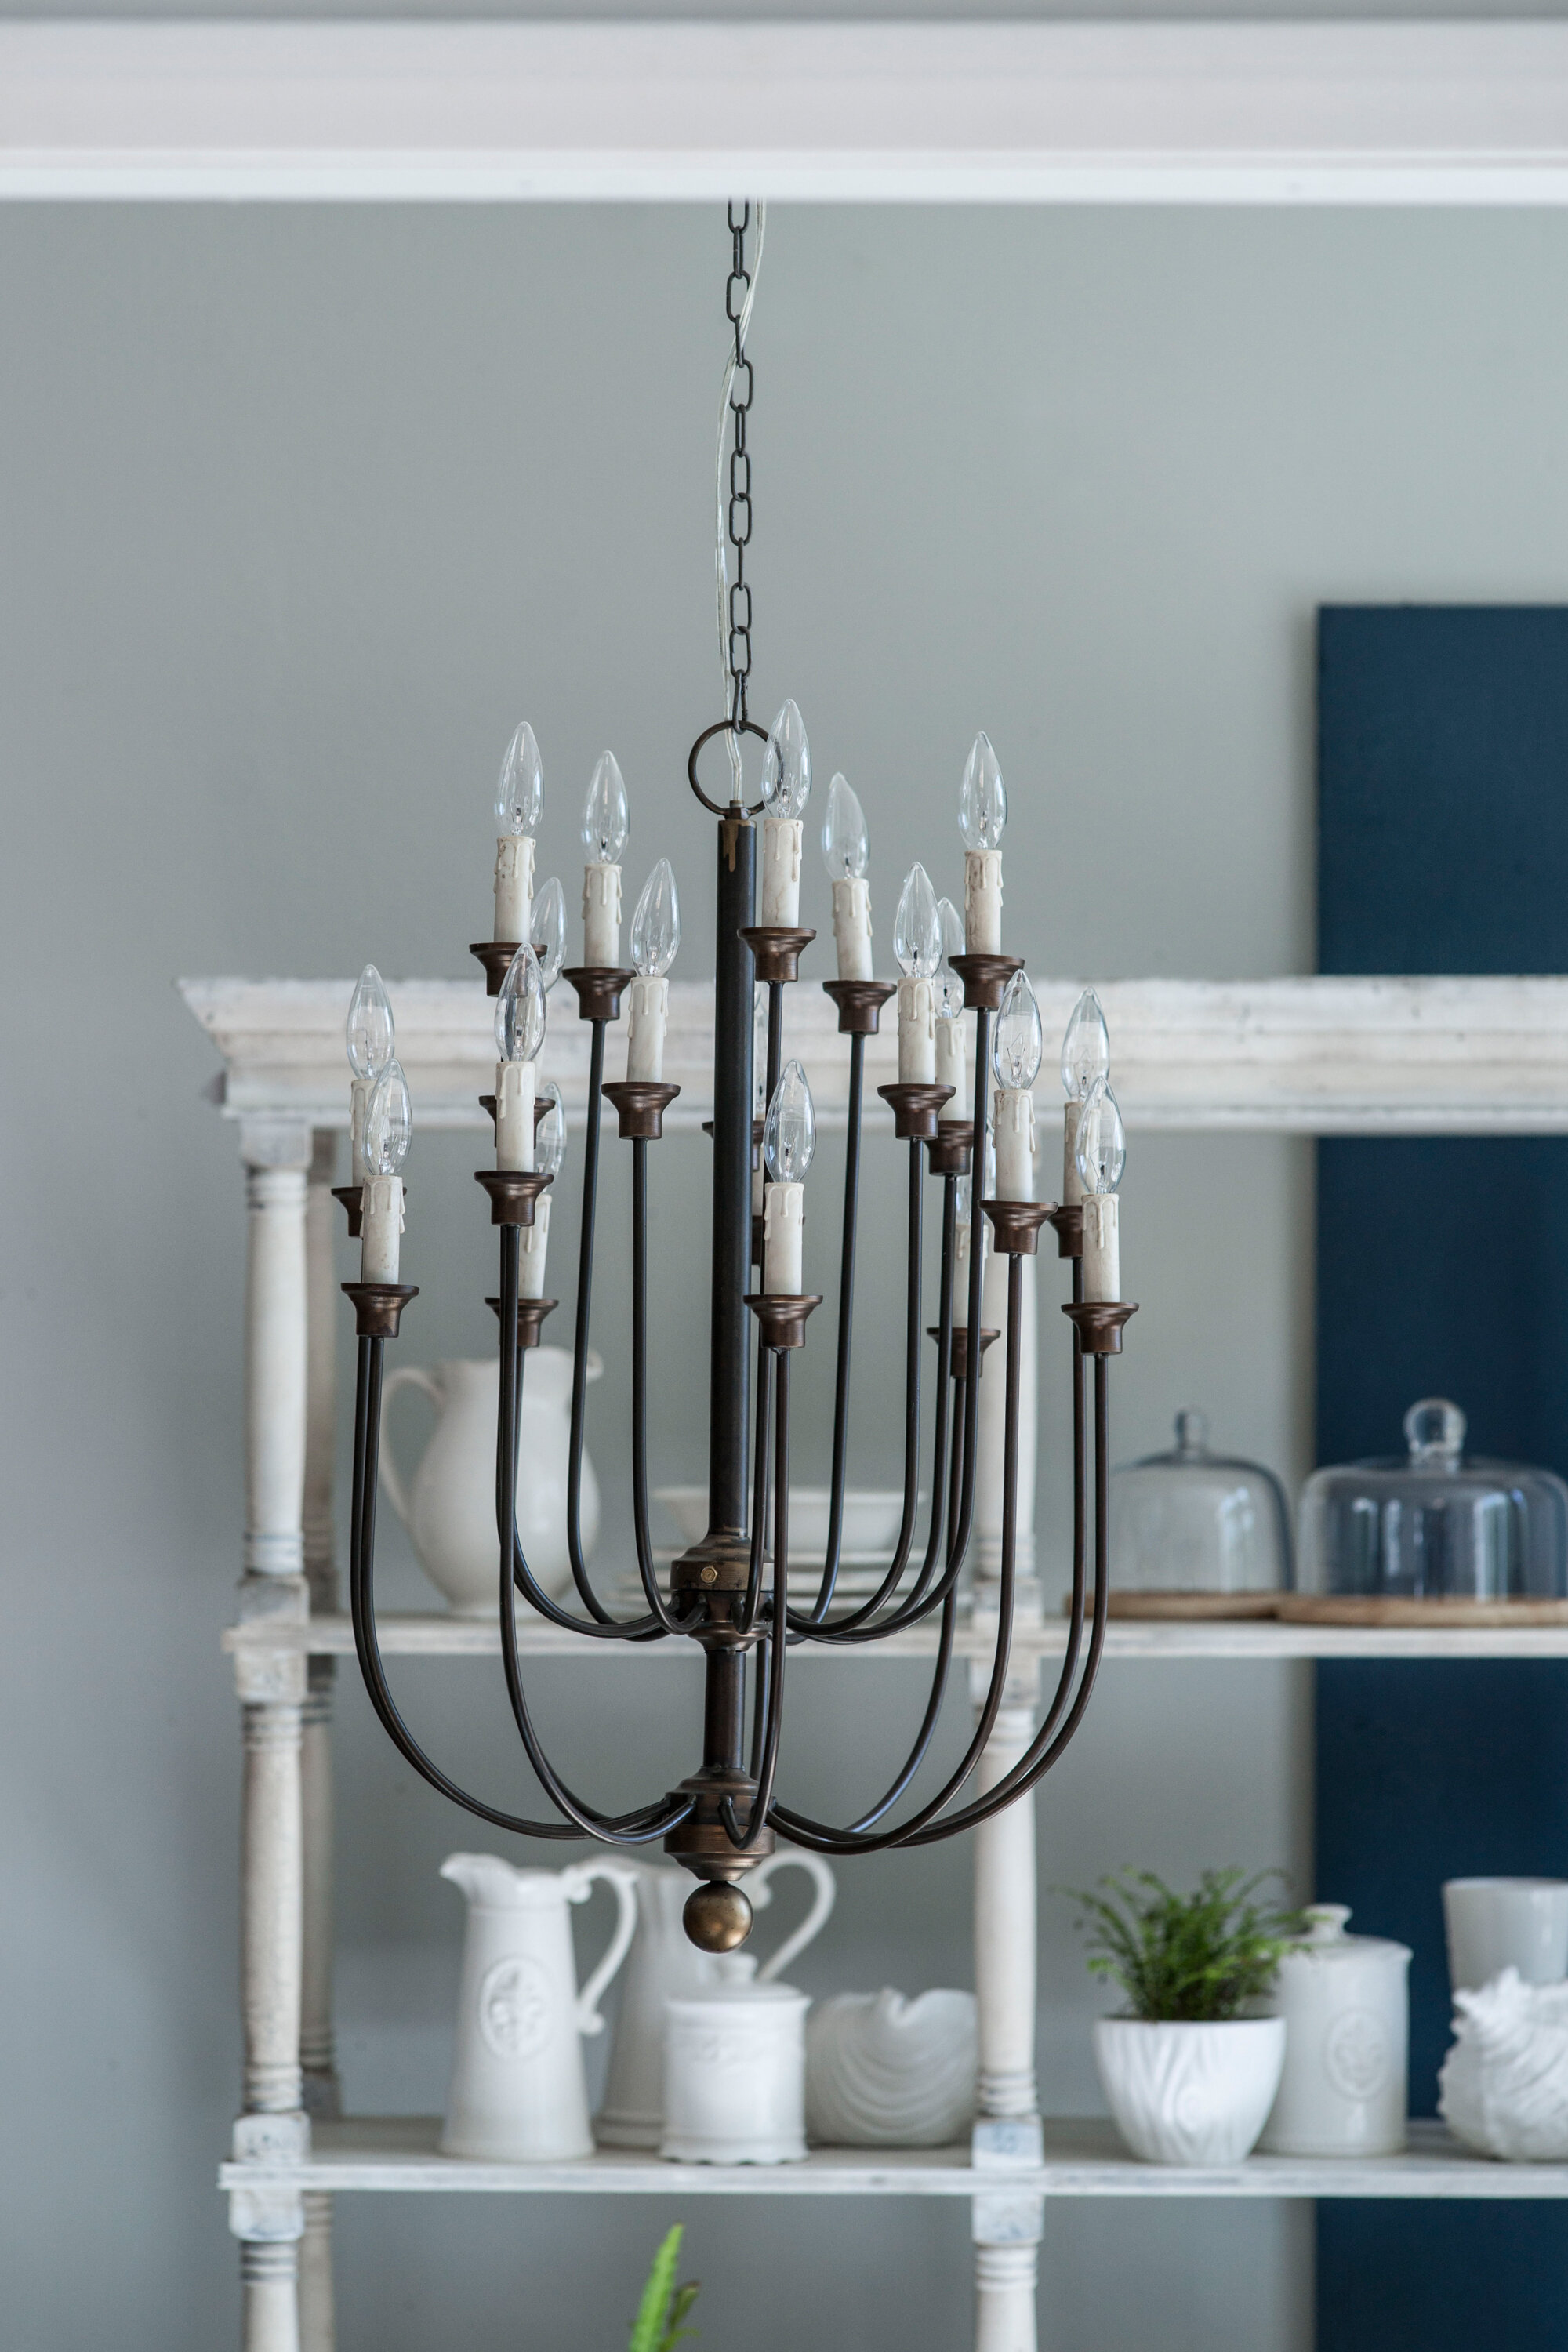 A&B Home 16 Light Candle Style Chandelier & Reviews